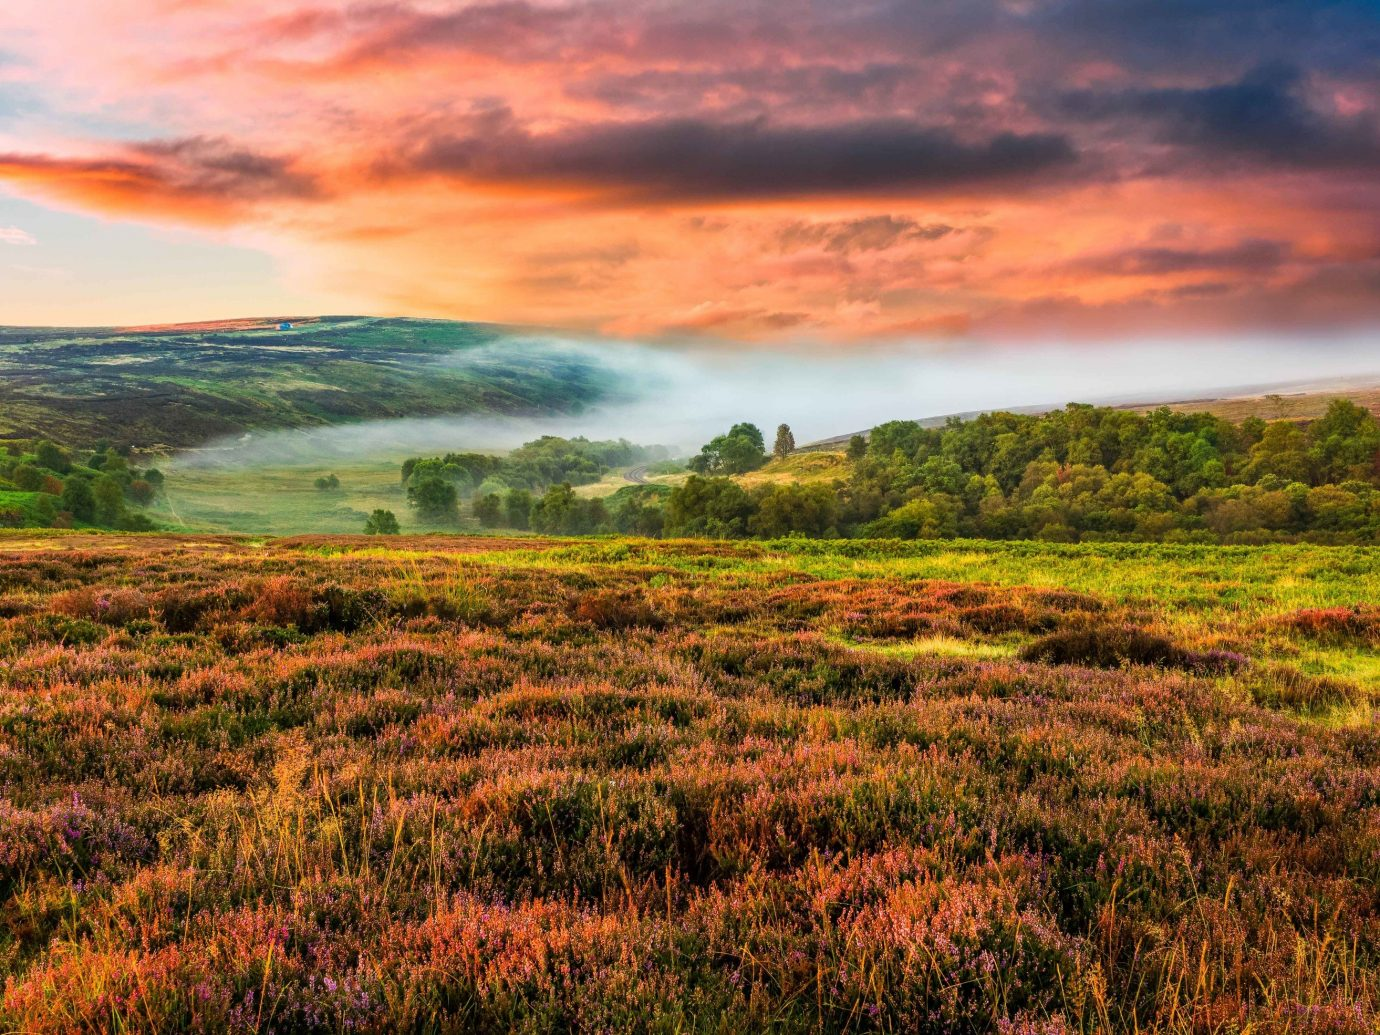 Romance Trip Ideas Weekend Getaways grass sky outdoor field vegetation grassland ecosystem wilderness dawn nature reserve tundra prairie highland hill morning meadow shrubland Nature grassy plain sunlight rural area ecoregion savanna landscape national park evening mount scenery horizon green wetland afterglow fell pasture sunrise escarpment plant community bog computer wallpaper cloud steppe wildflower red sky at morning clouds lush distance hillside